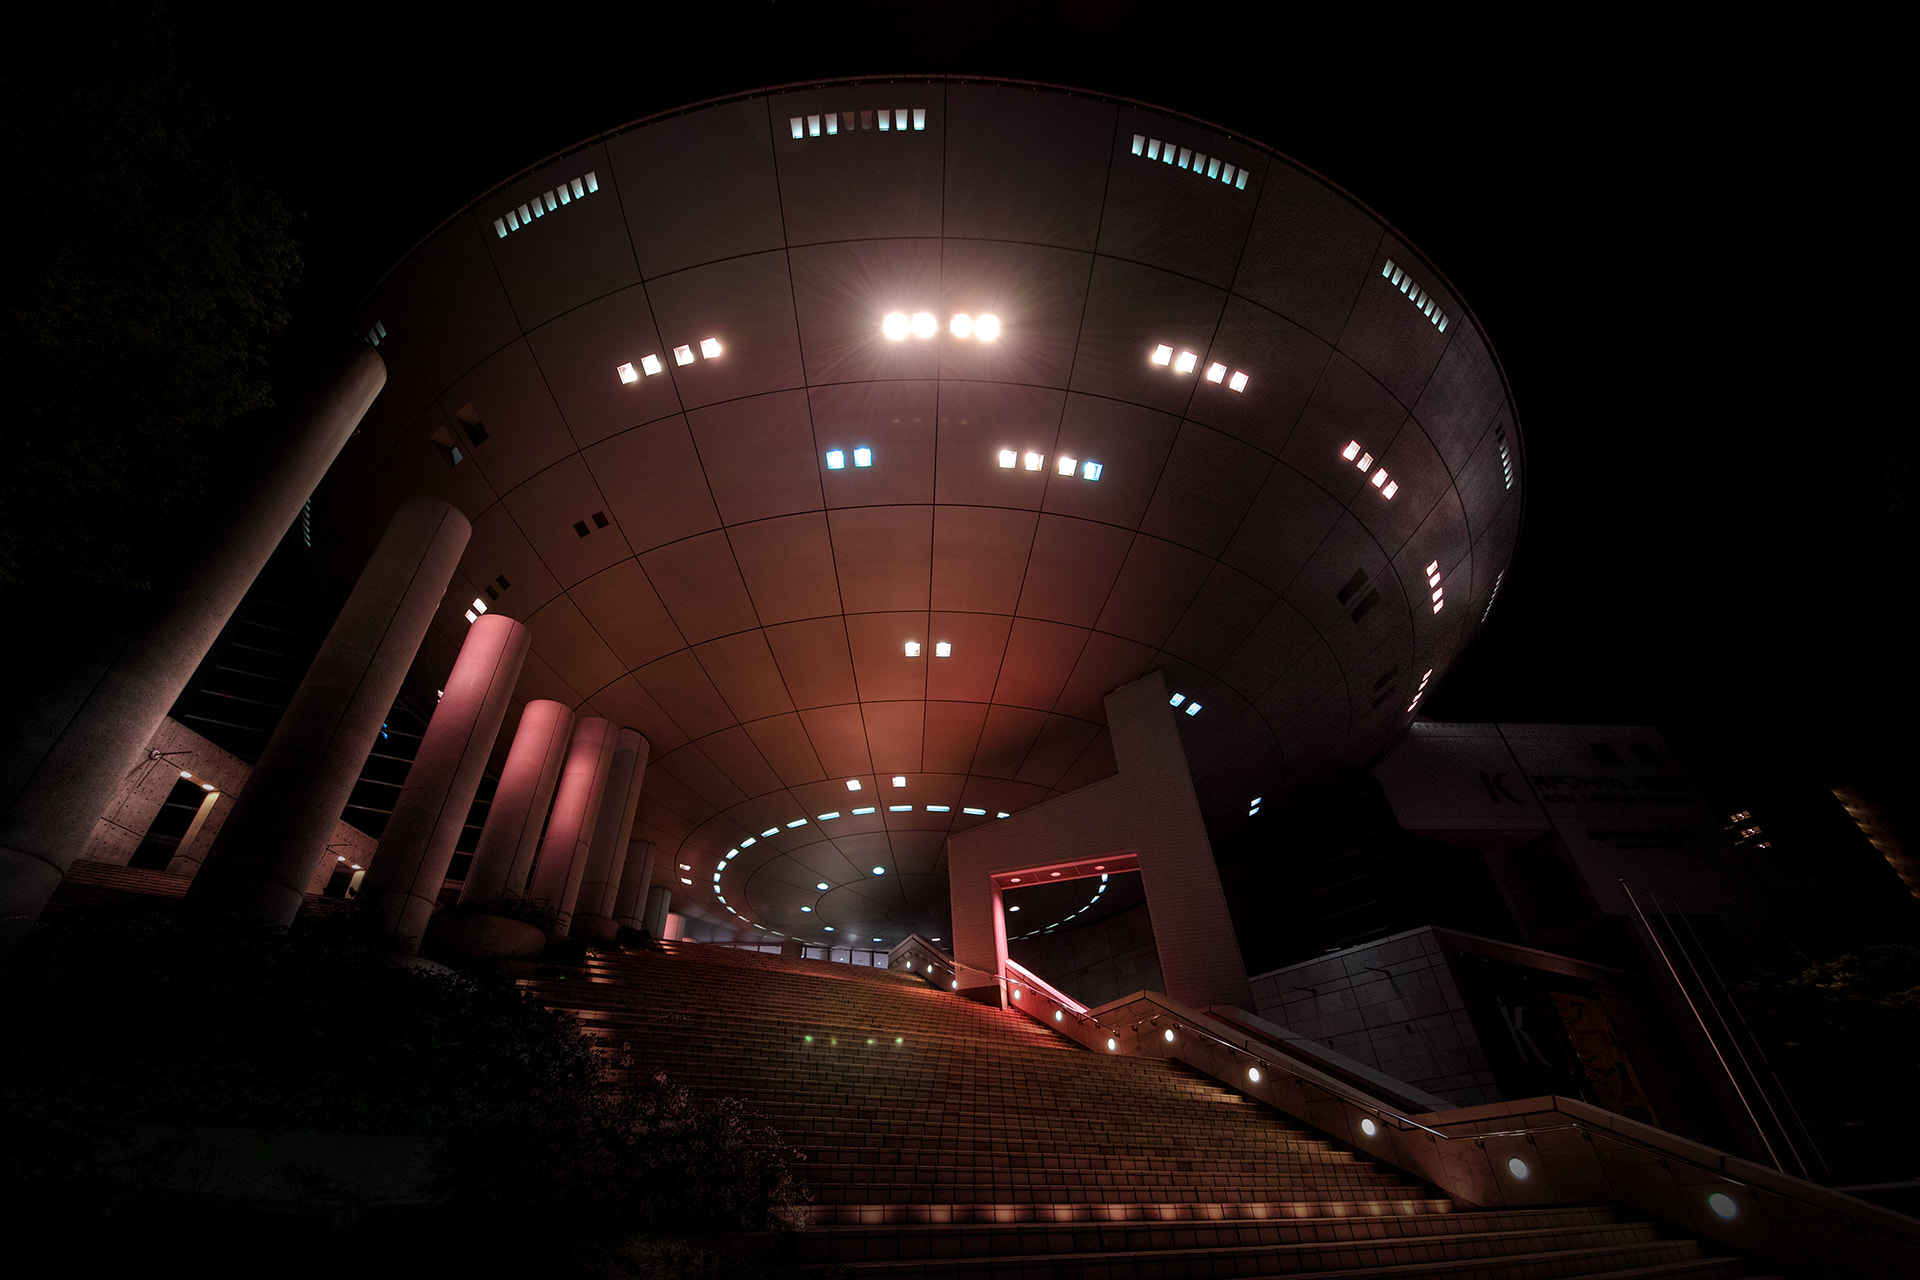 Photograph The Starship by Azul Obscura on 500px